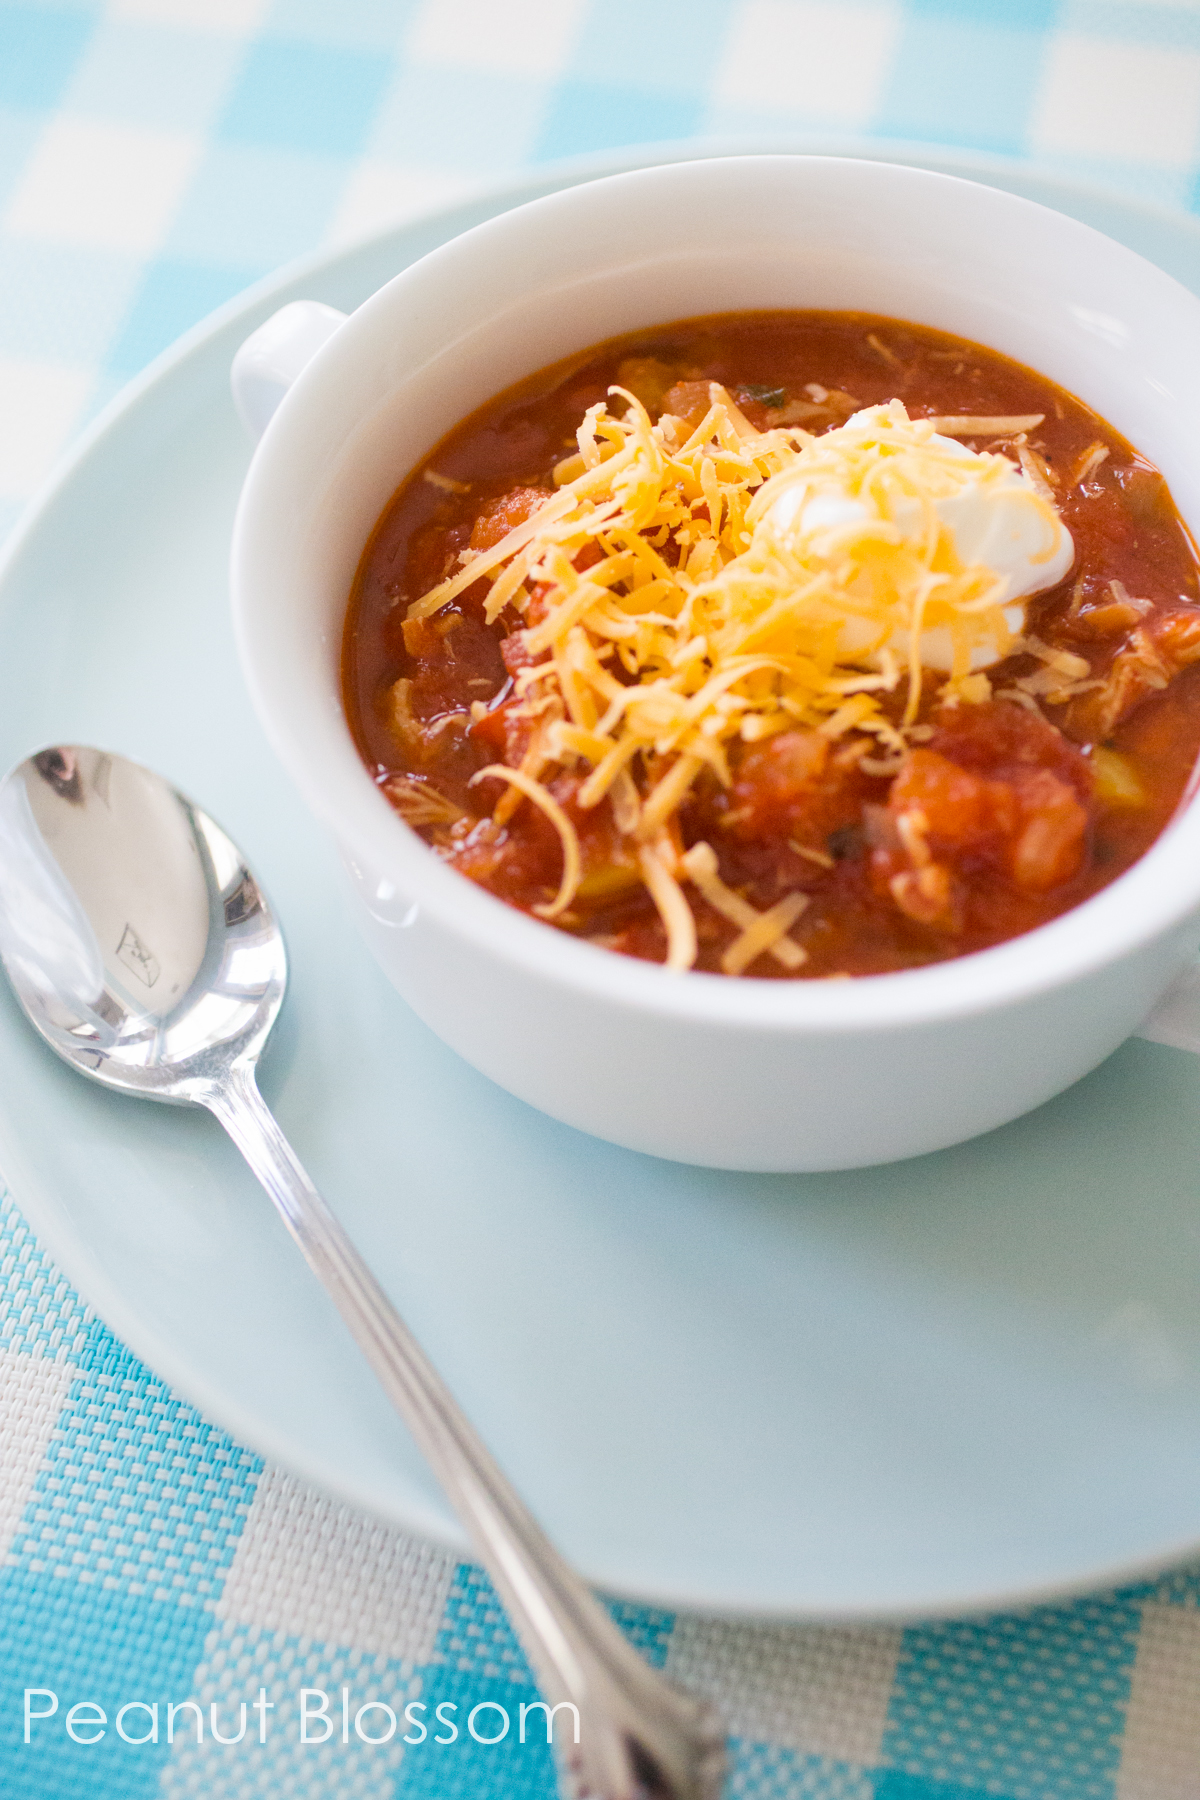 Homemade chicken chili: tons of veggies but NO beans! Only 3 WW points per serving.